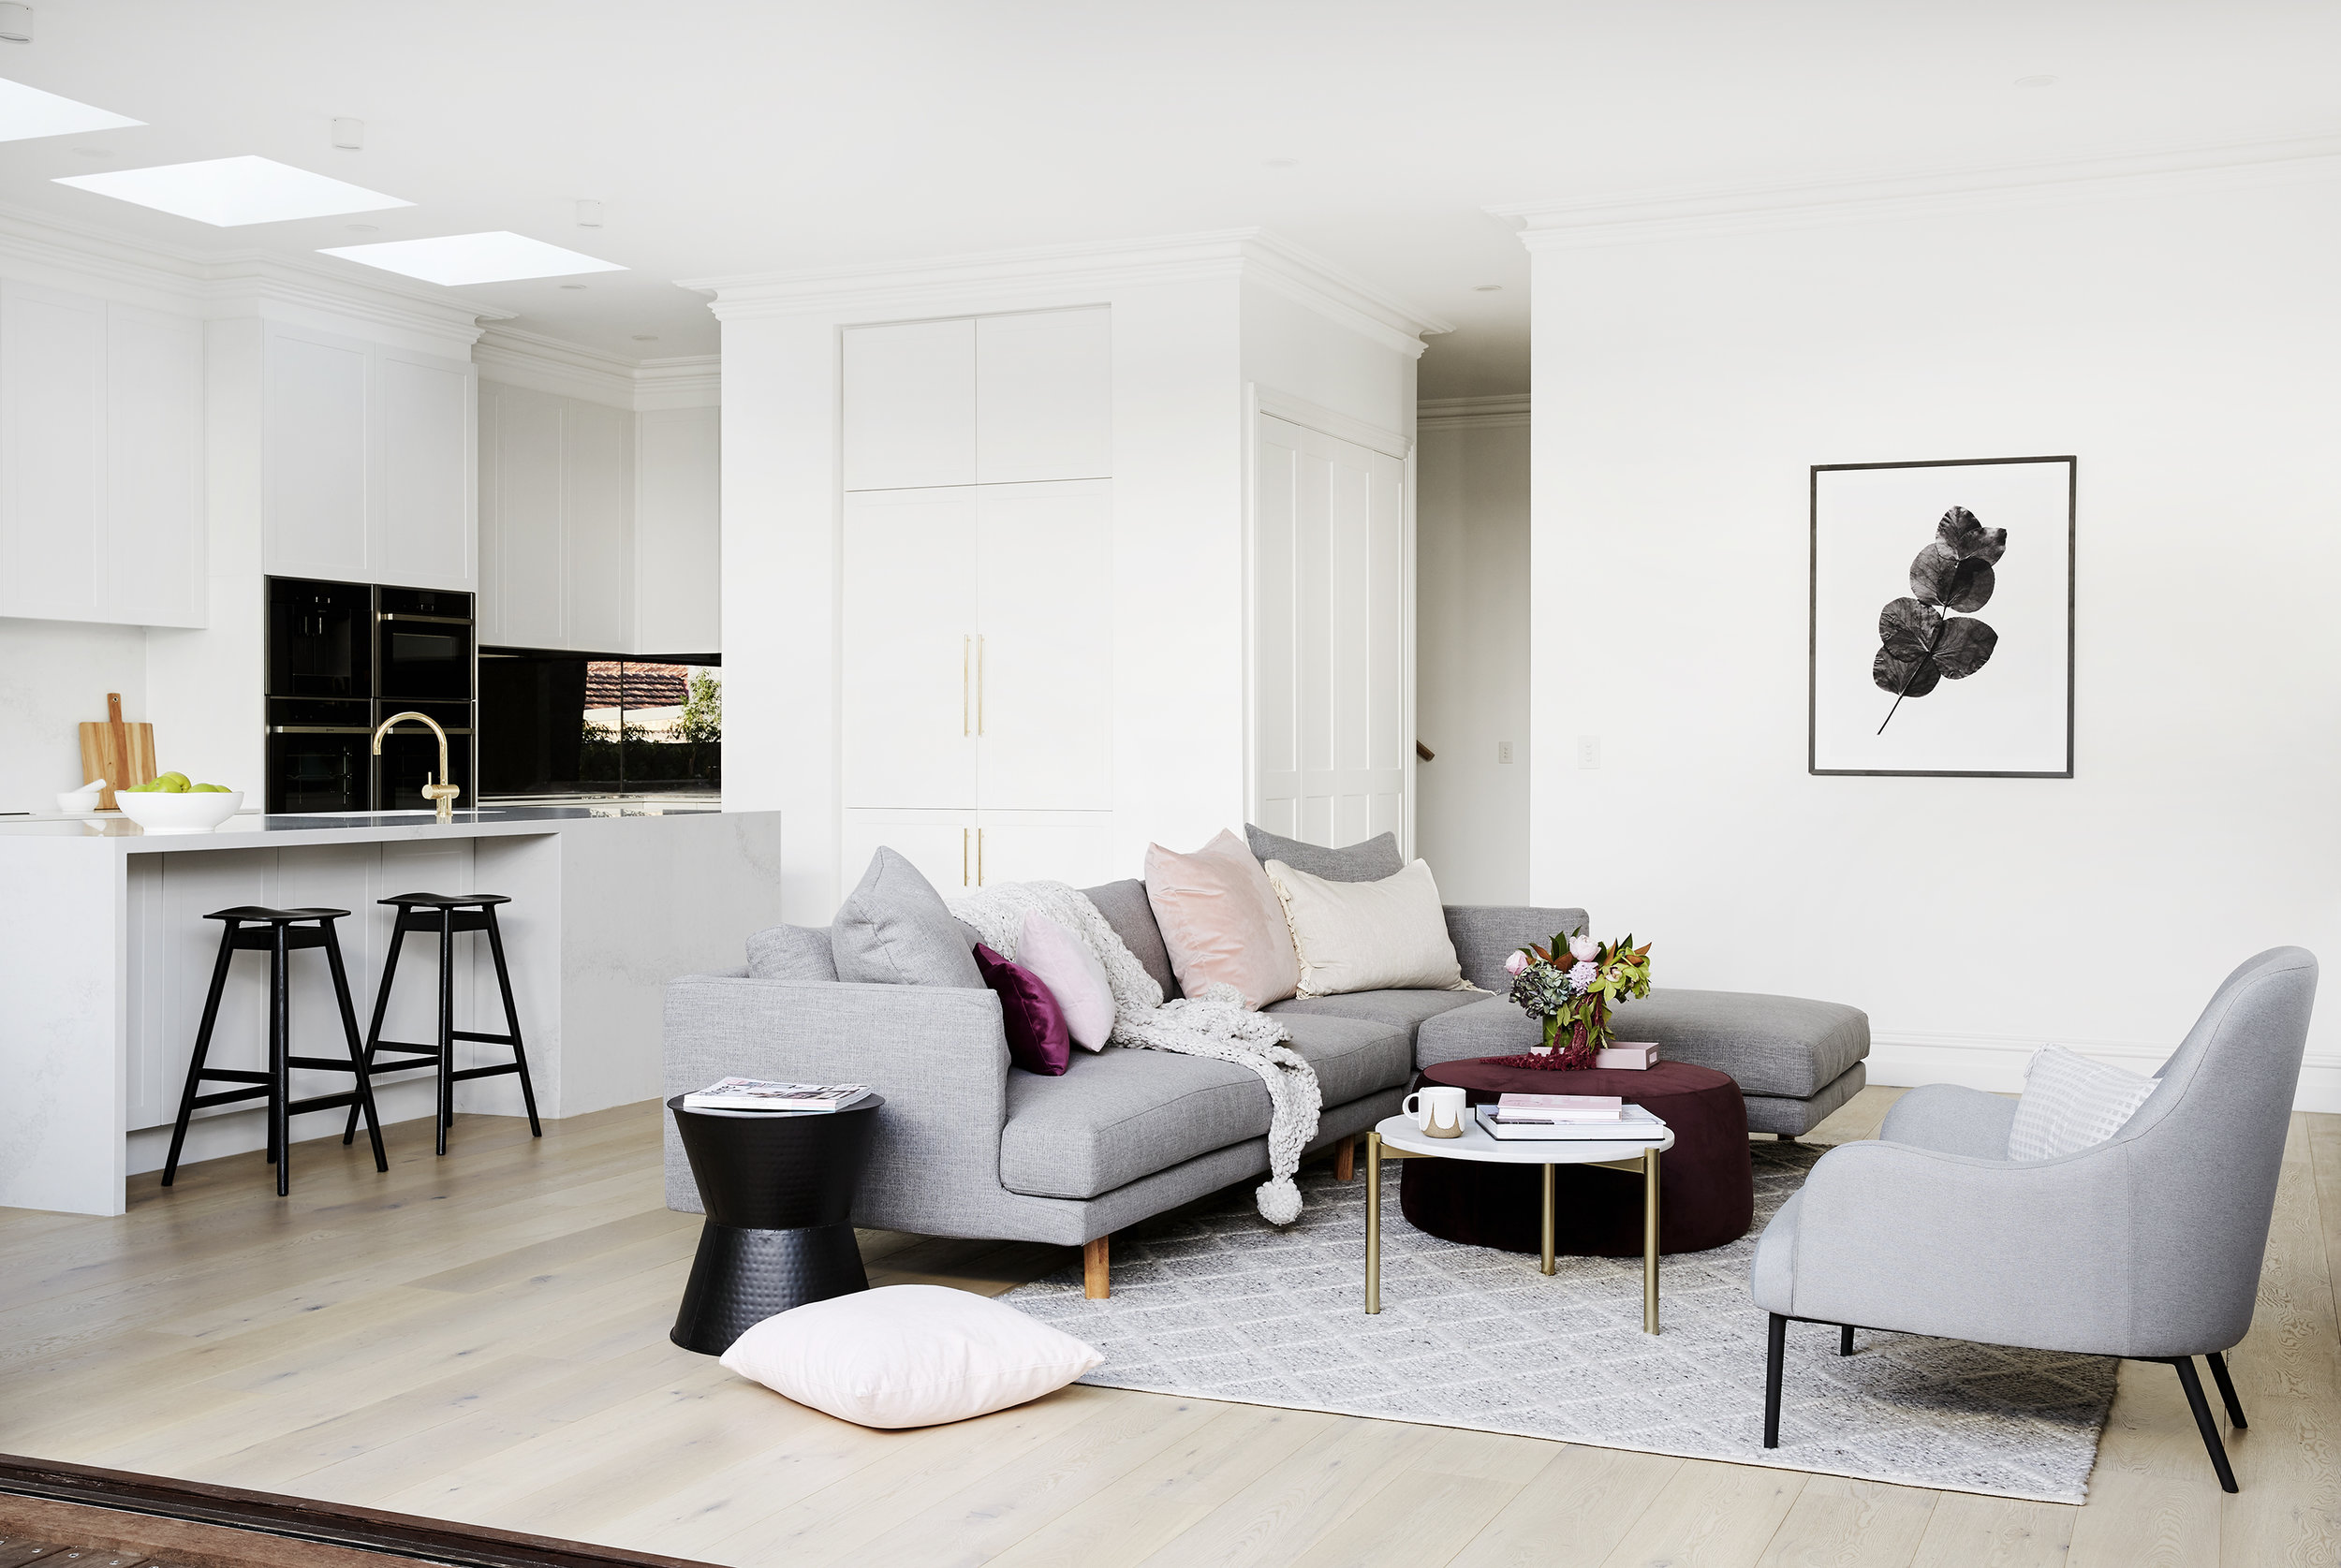 Julia and Sasha hired  The Real Estate Stylist  to help furnish and style the home before putting it on the market.  Sofa from GlobeWest; rug from Tribe Home; ottoman from Retrojan.